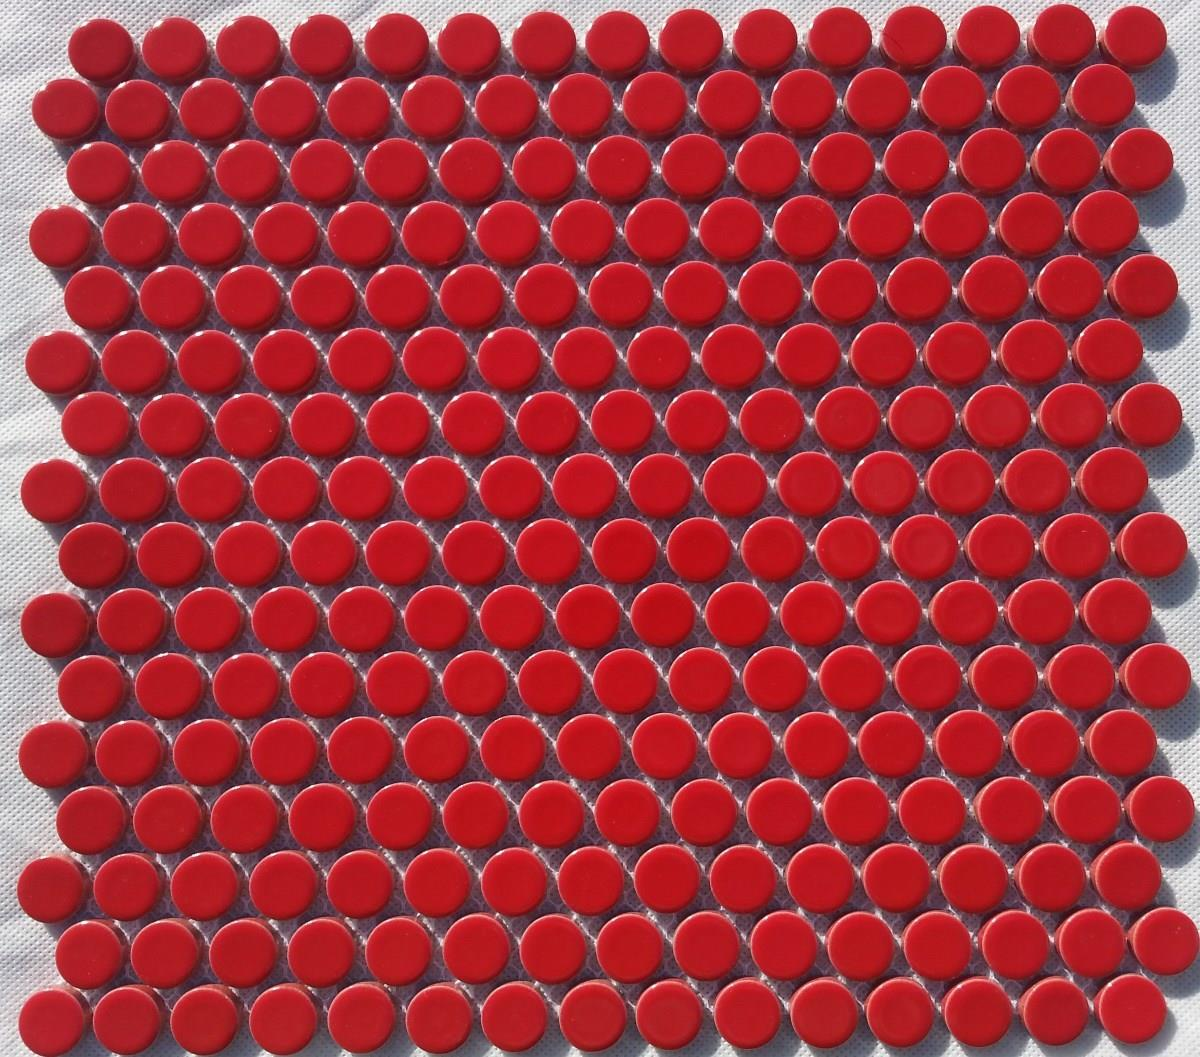 Penny Wall Tile For Bathroom Amp Kitchen Splashback